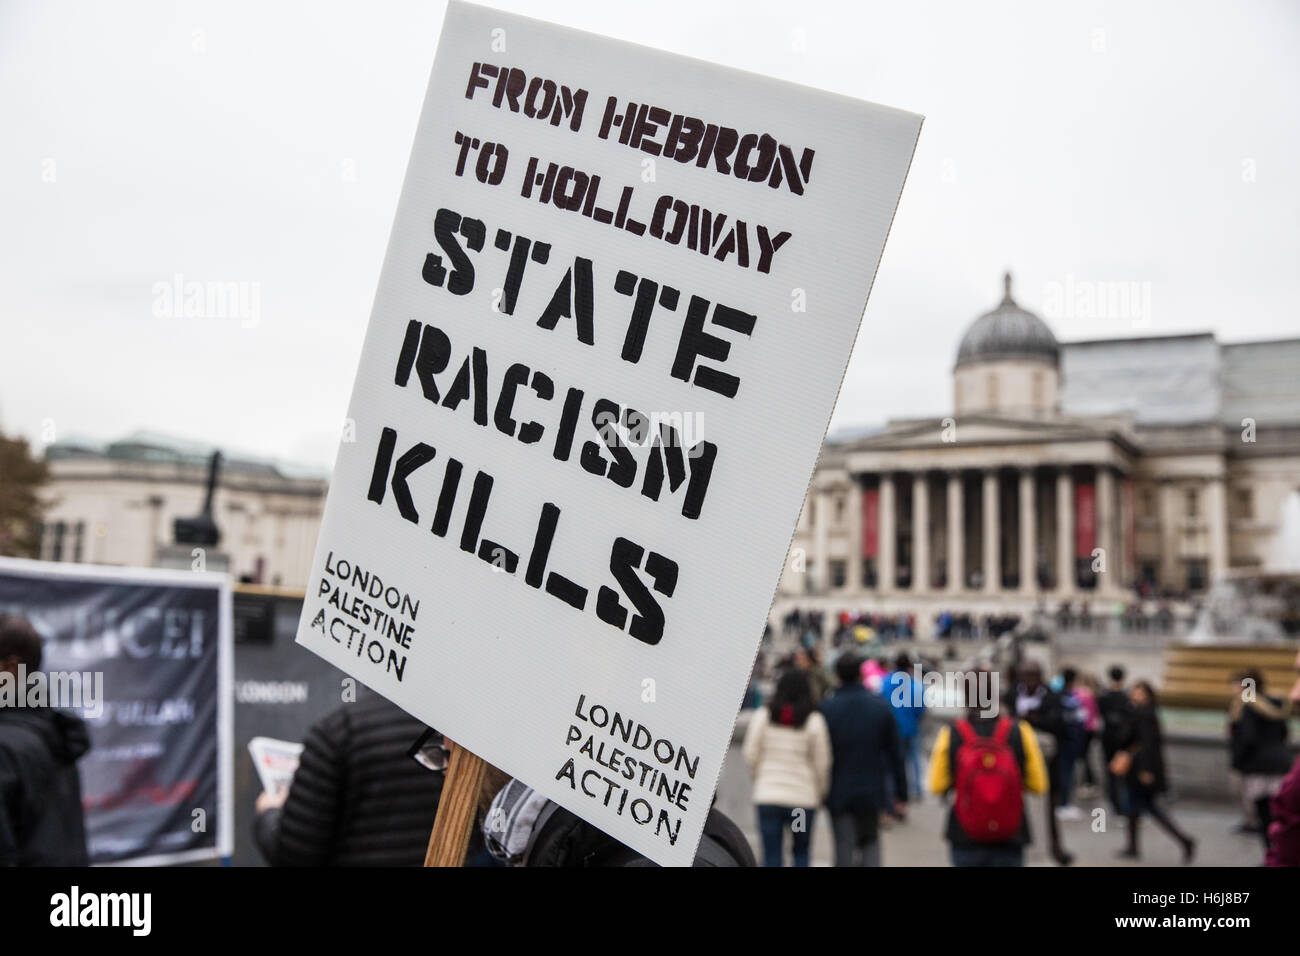 London, UK. 29th October, 2016. A London Palestine Action placard before the United Families and Friends Campaign - Stock Image